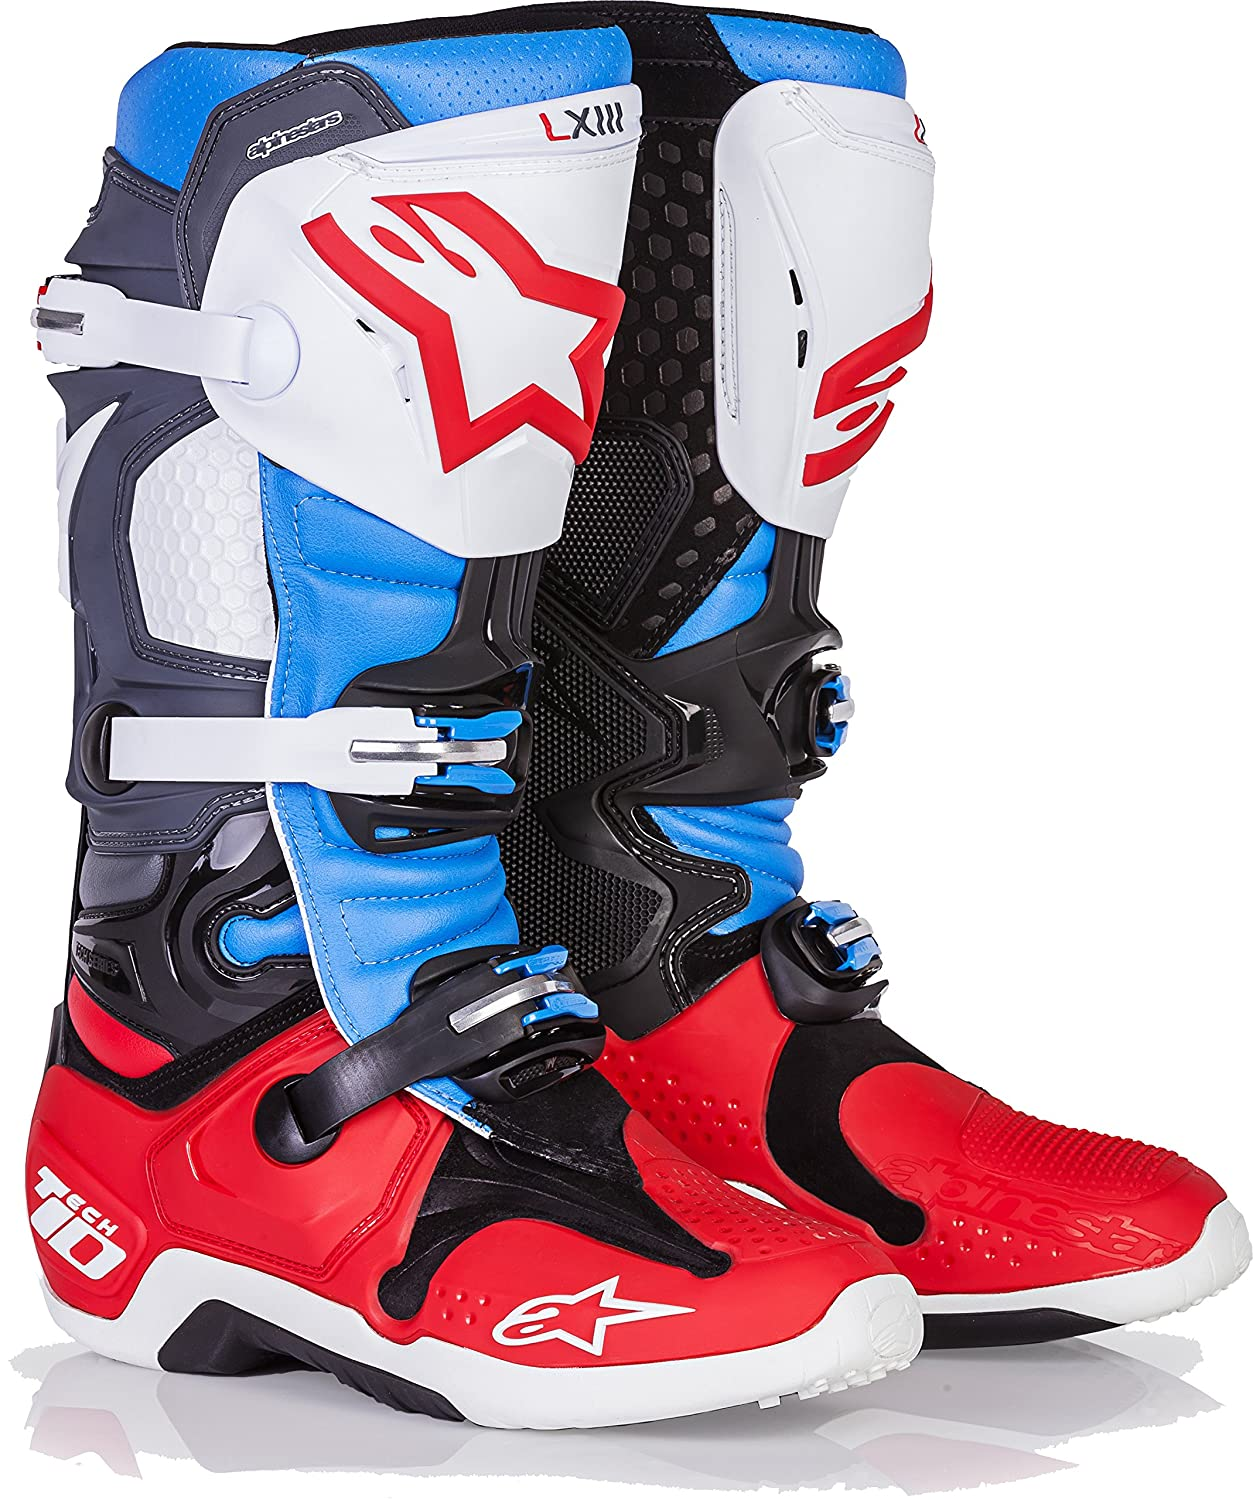 8 Alpinestars Tech 10 Limited Edition BOMBER Boots Red Aqua Anthracite White